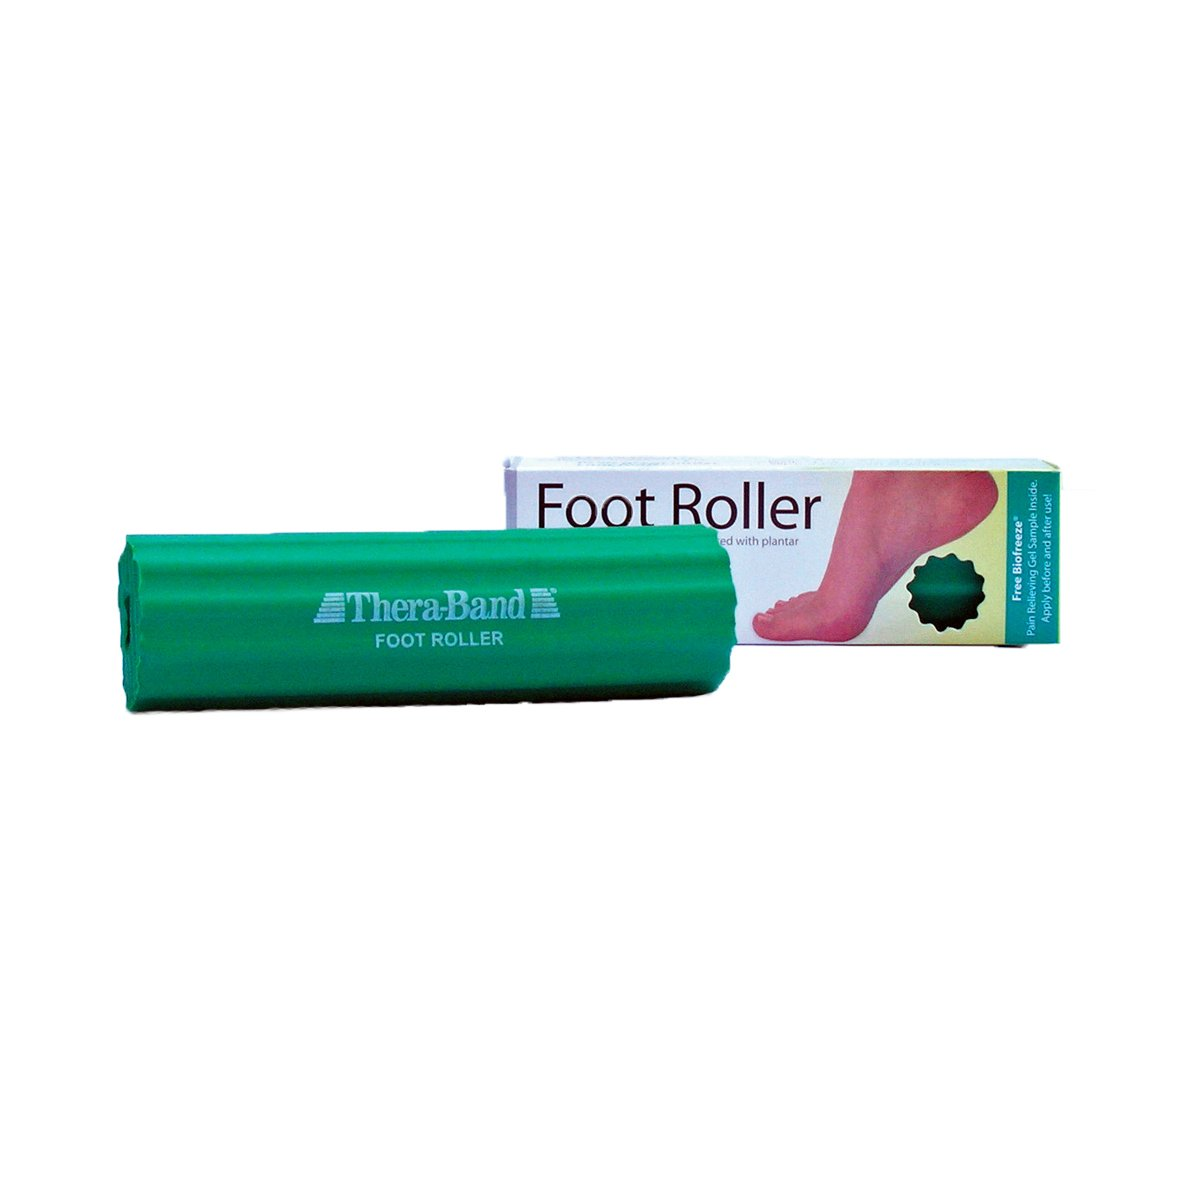 amazon com theraband foot roller for foot pain relief massage